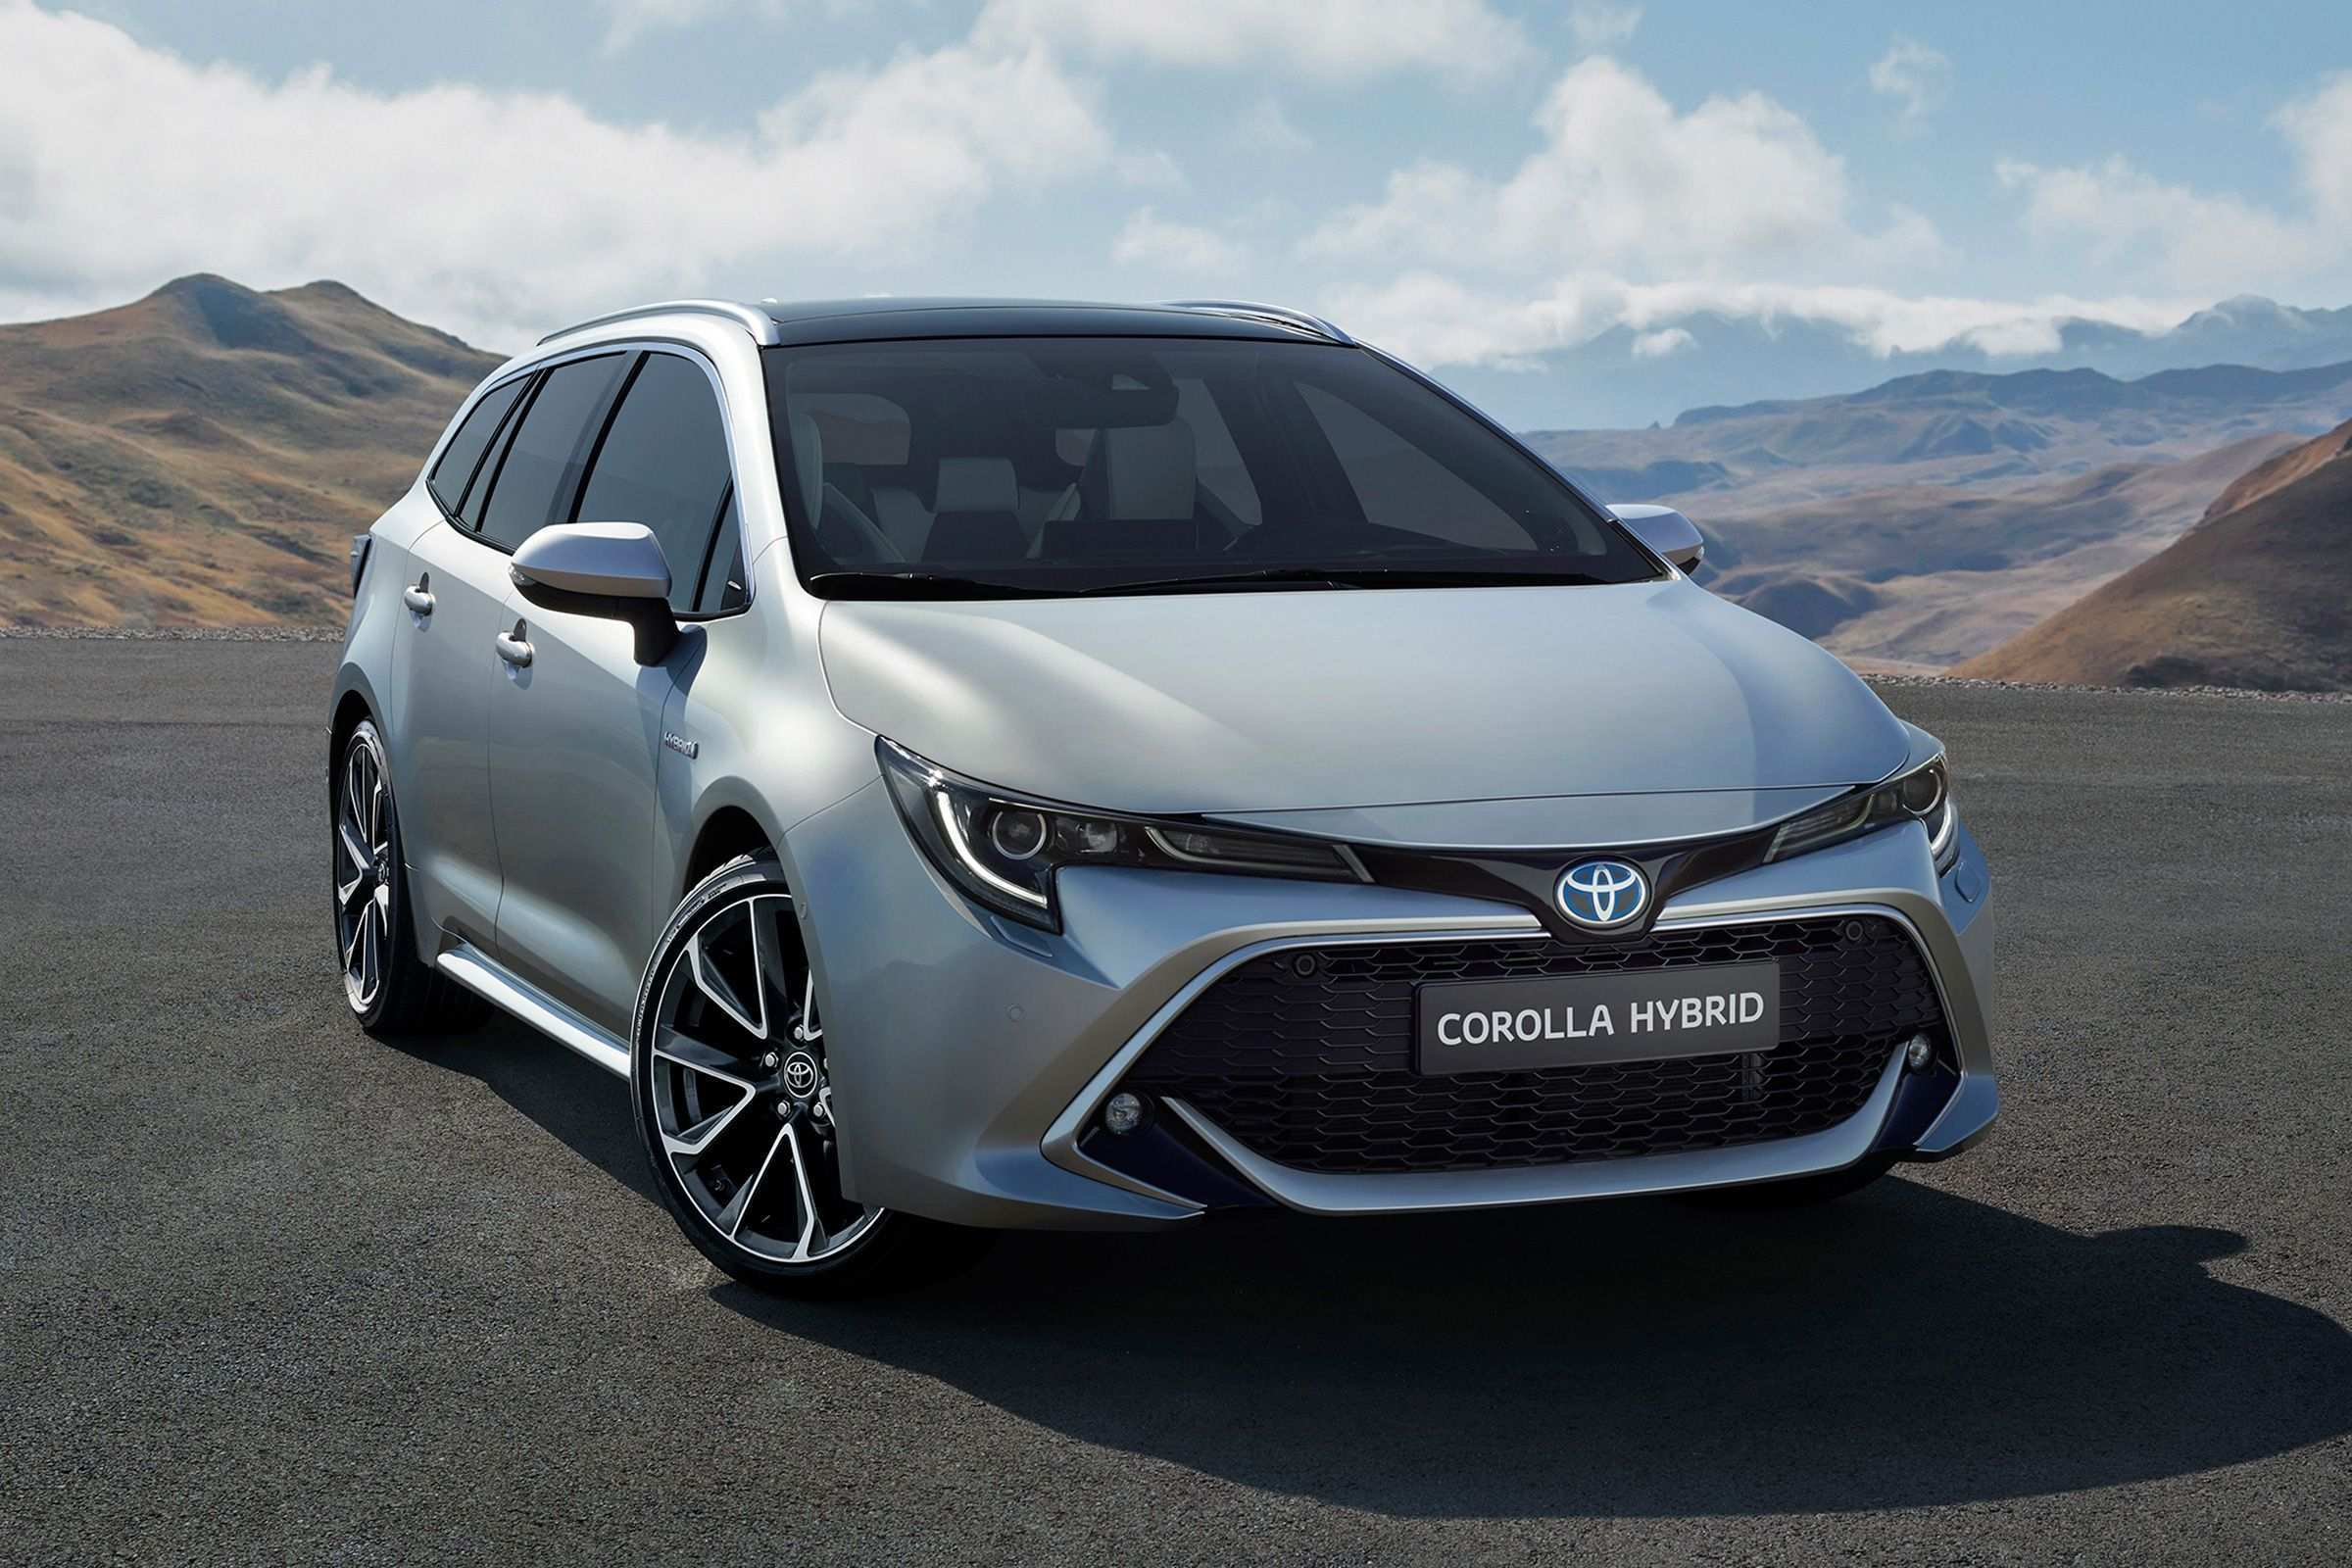 97 Gallery of Toyota Corolla 2020 Uk New Review for Toyota Corolla 2020 Uk